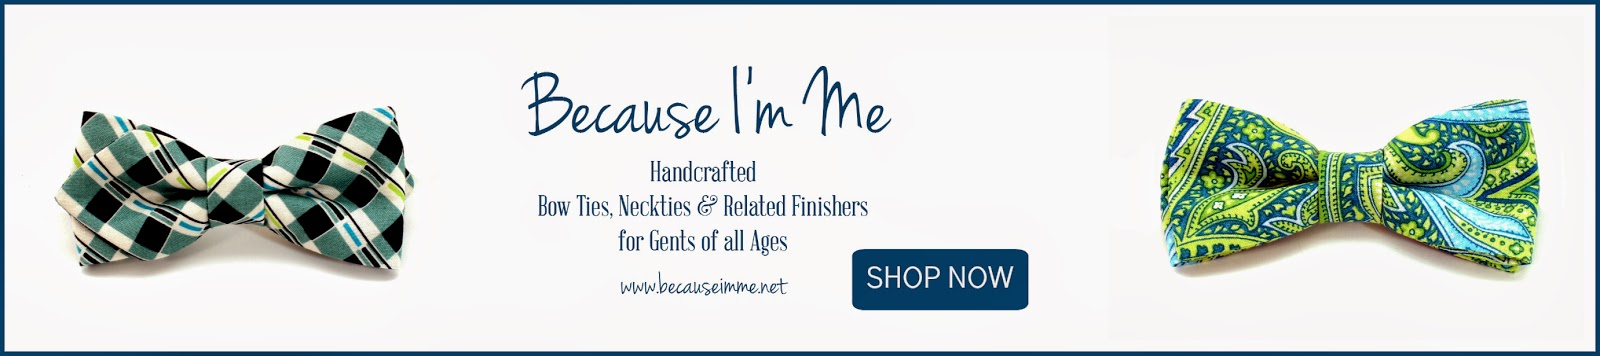 Shop Now Because I'm Me bow ties for boys and men, gents of all ages